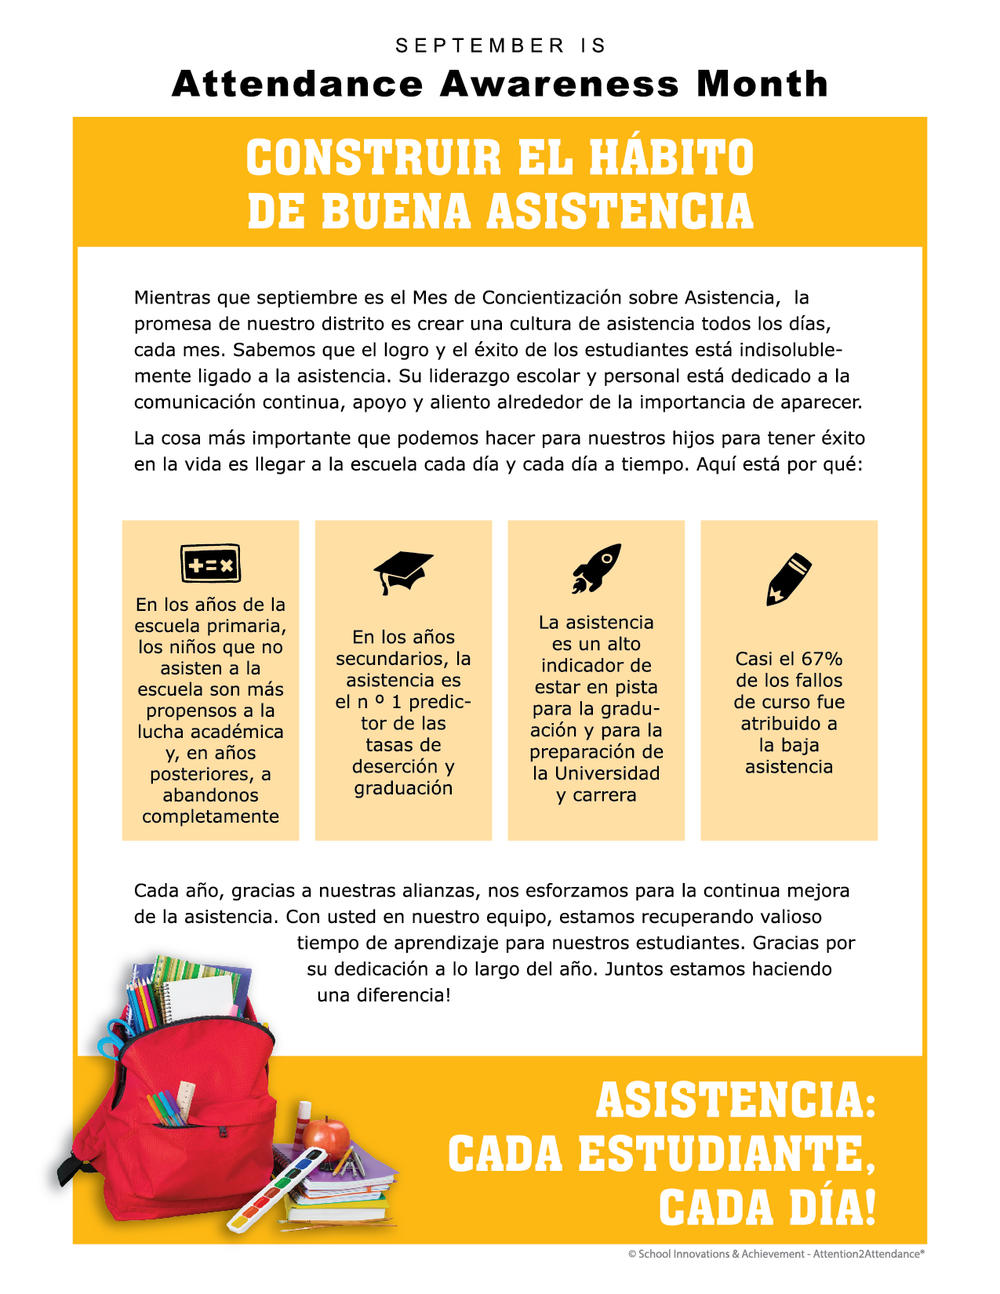 Attendance Awareness Month Flyer in Spanish